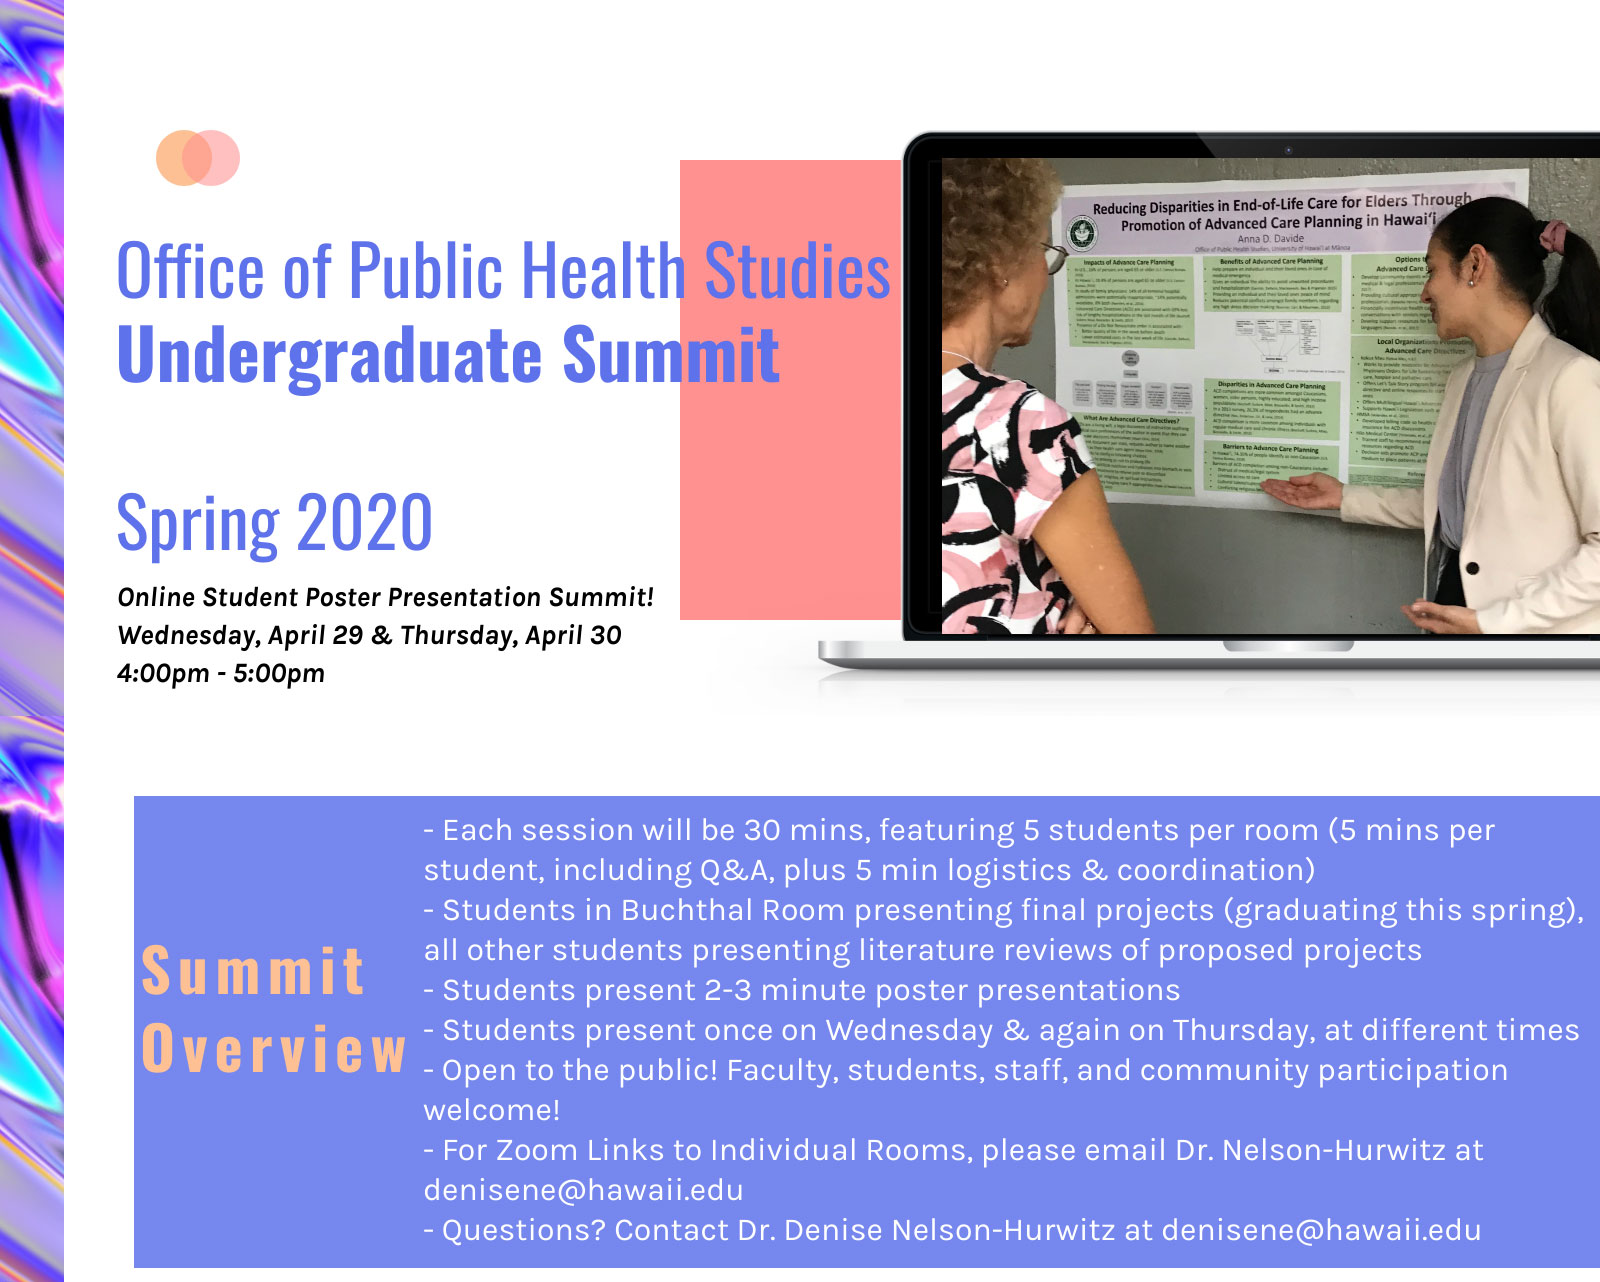 Spring 2020 Undergraduate Summit Flyer (4/29 & 4/30 from 4:00 - 5:00pm)